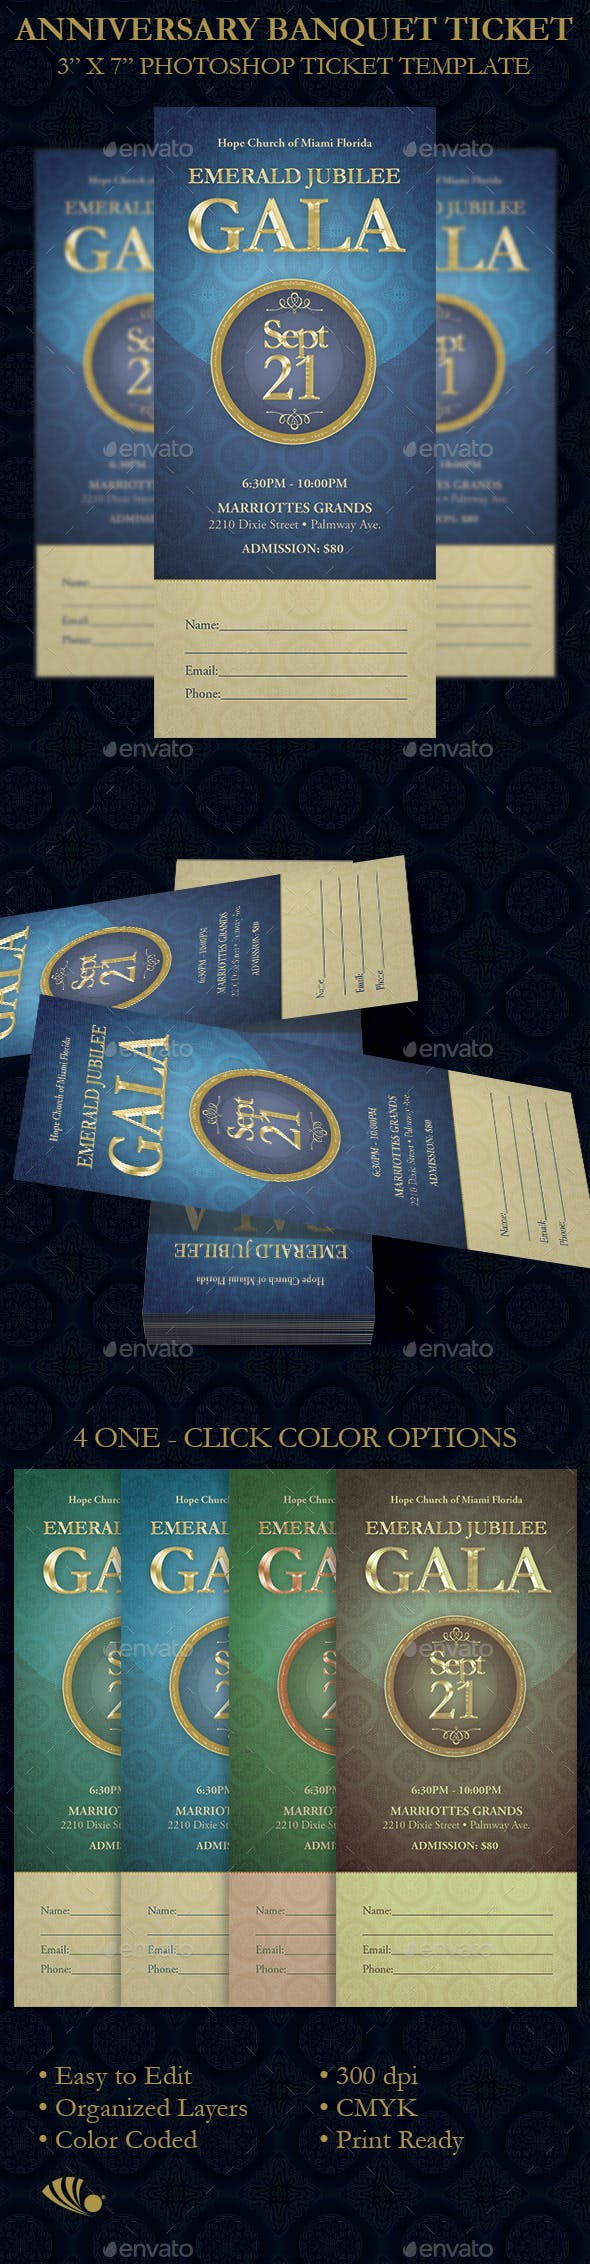 anniversary banquet ticket template by 4cgraphic graphicriver